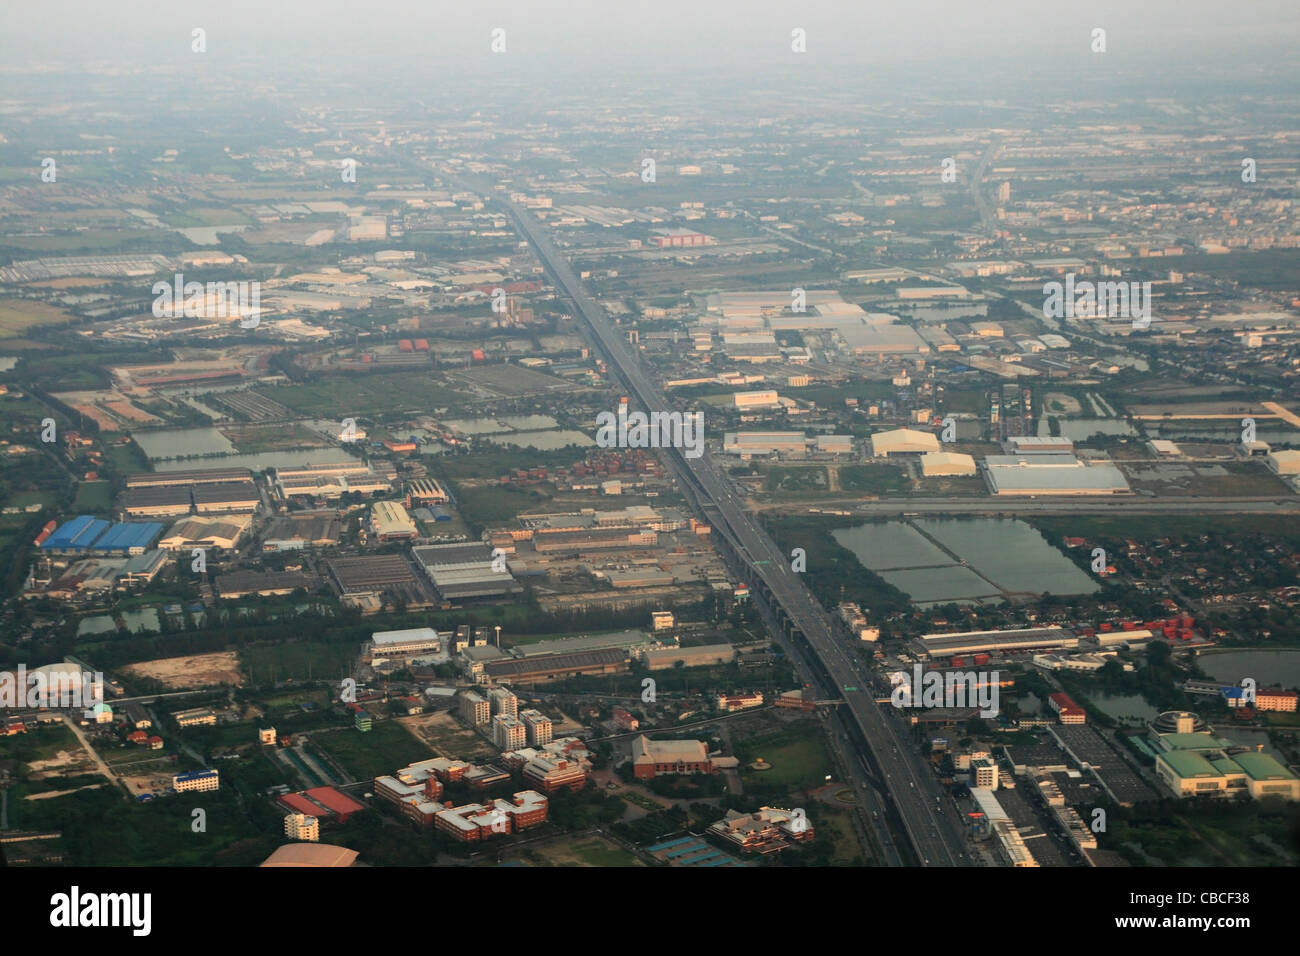 aerial image of the outskirts of Bangkok in Thailand with pollution haze - Stock Image